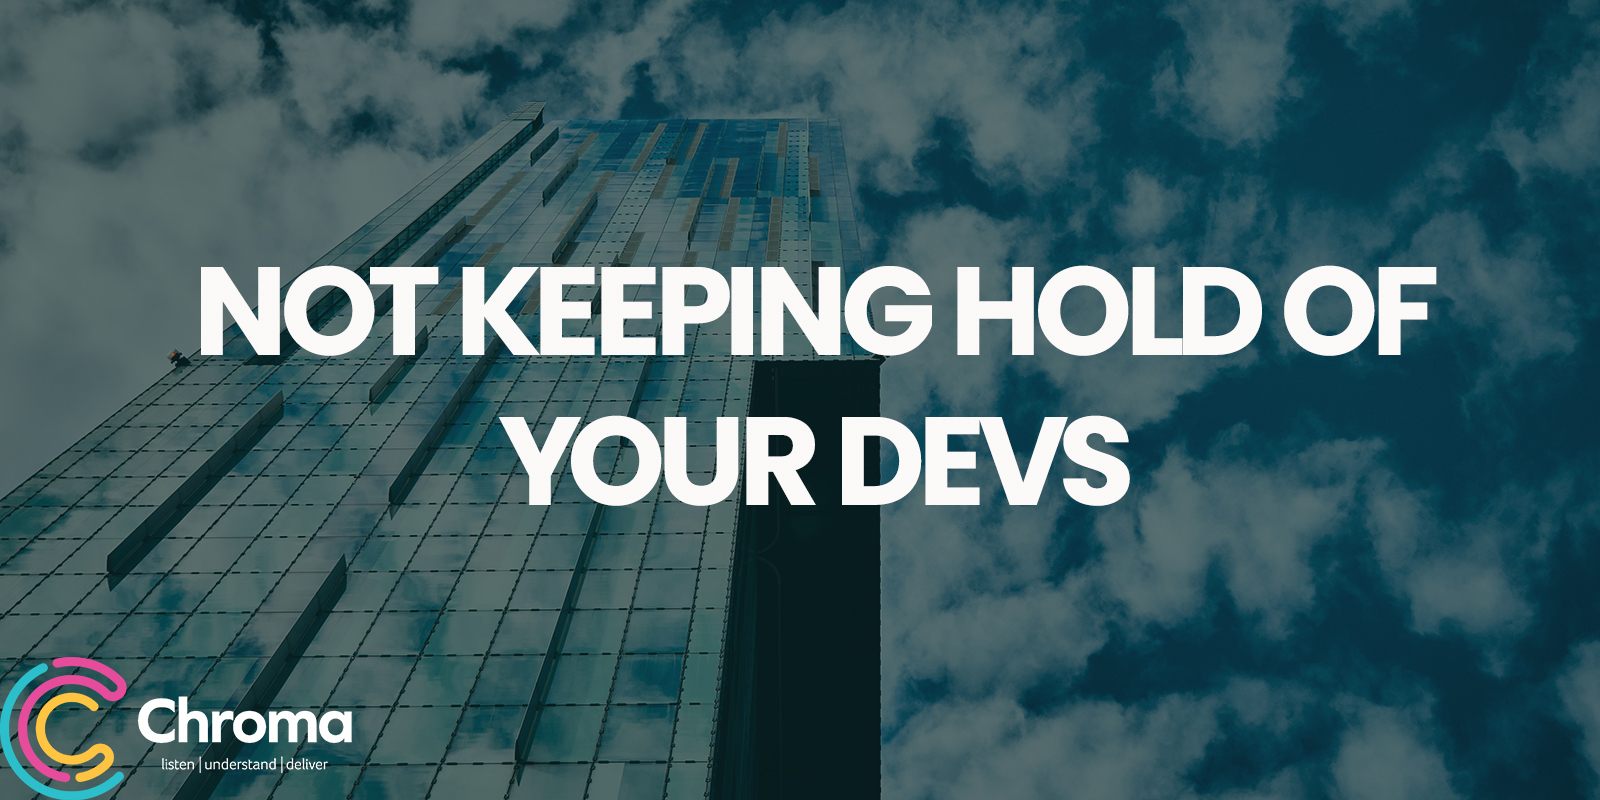 Not keeping hold of your devs